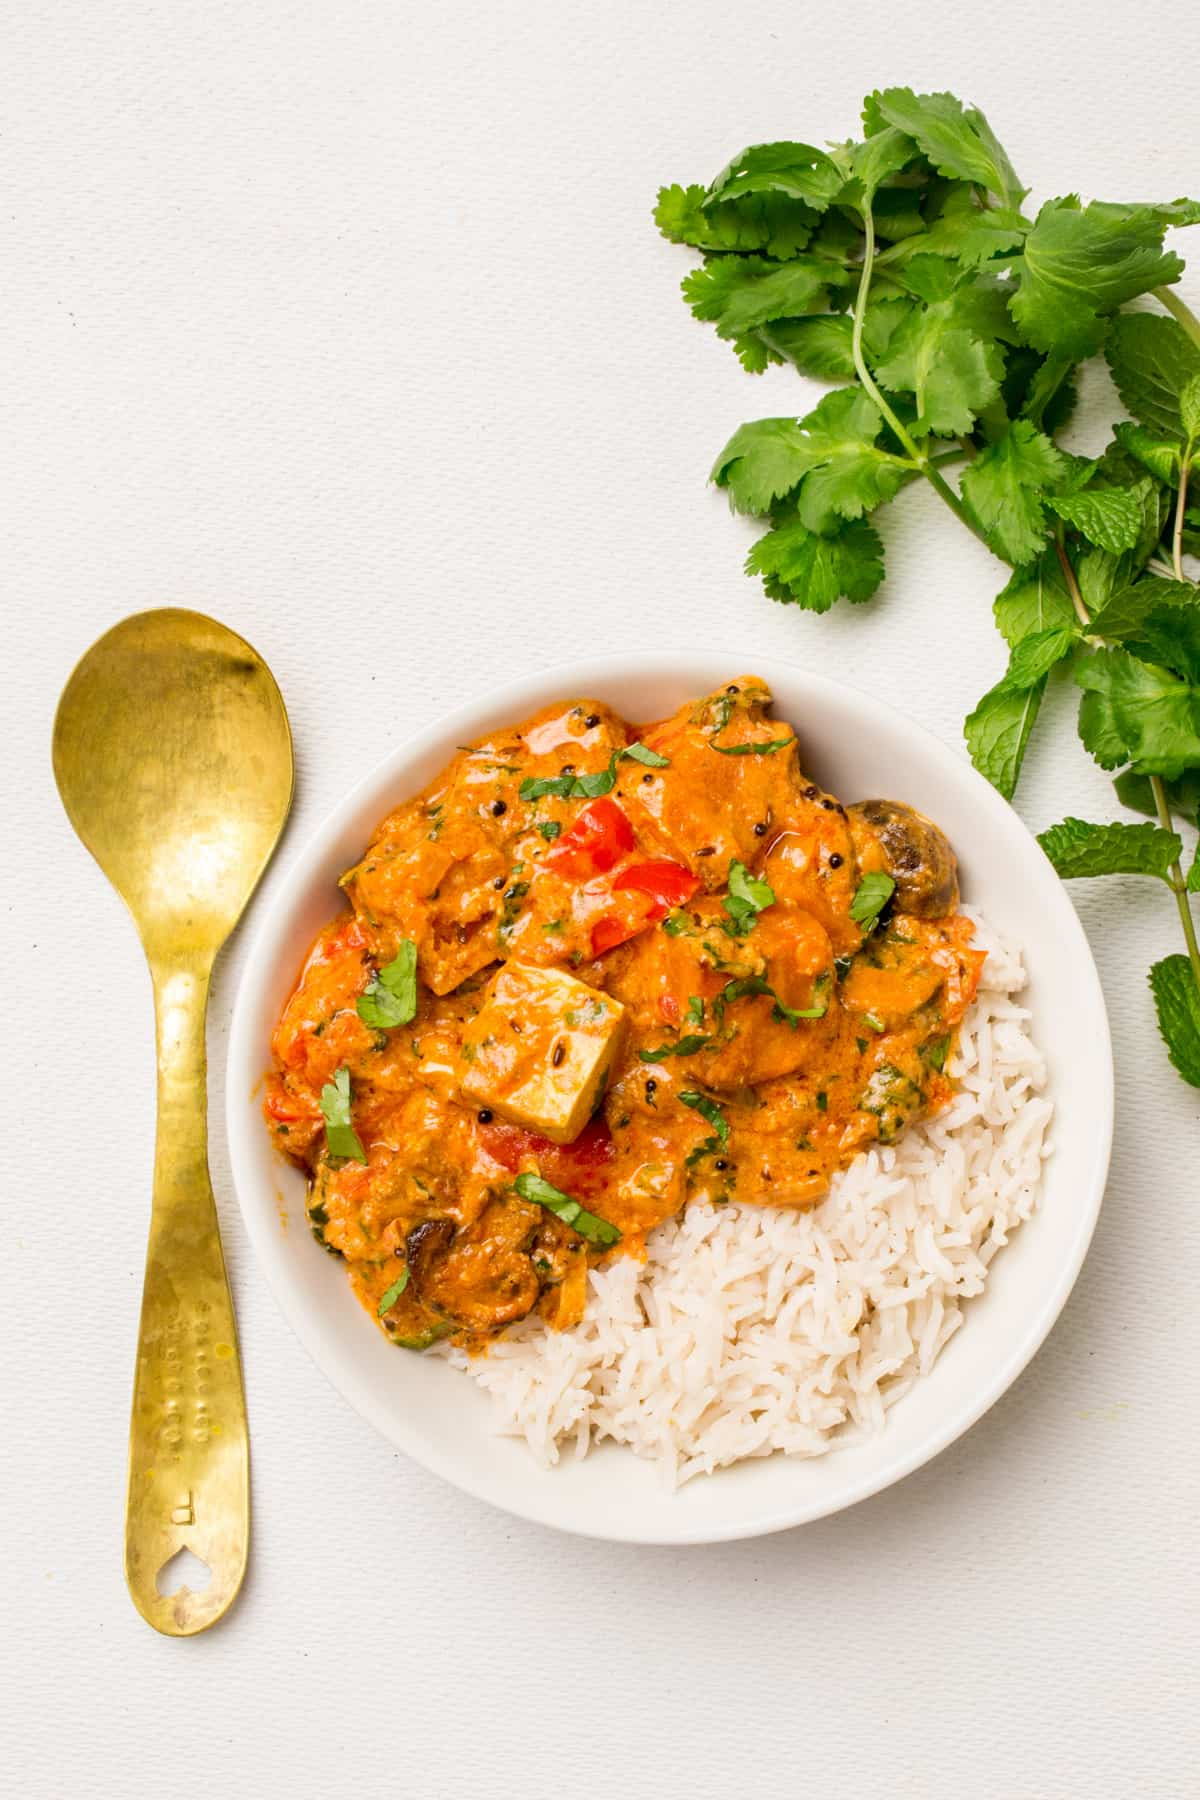 A bowl of richly coloured vegan tikka masala with rice, a brass spoon and herbs on the next to it.